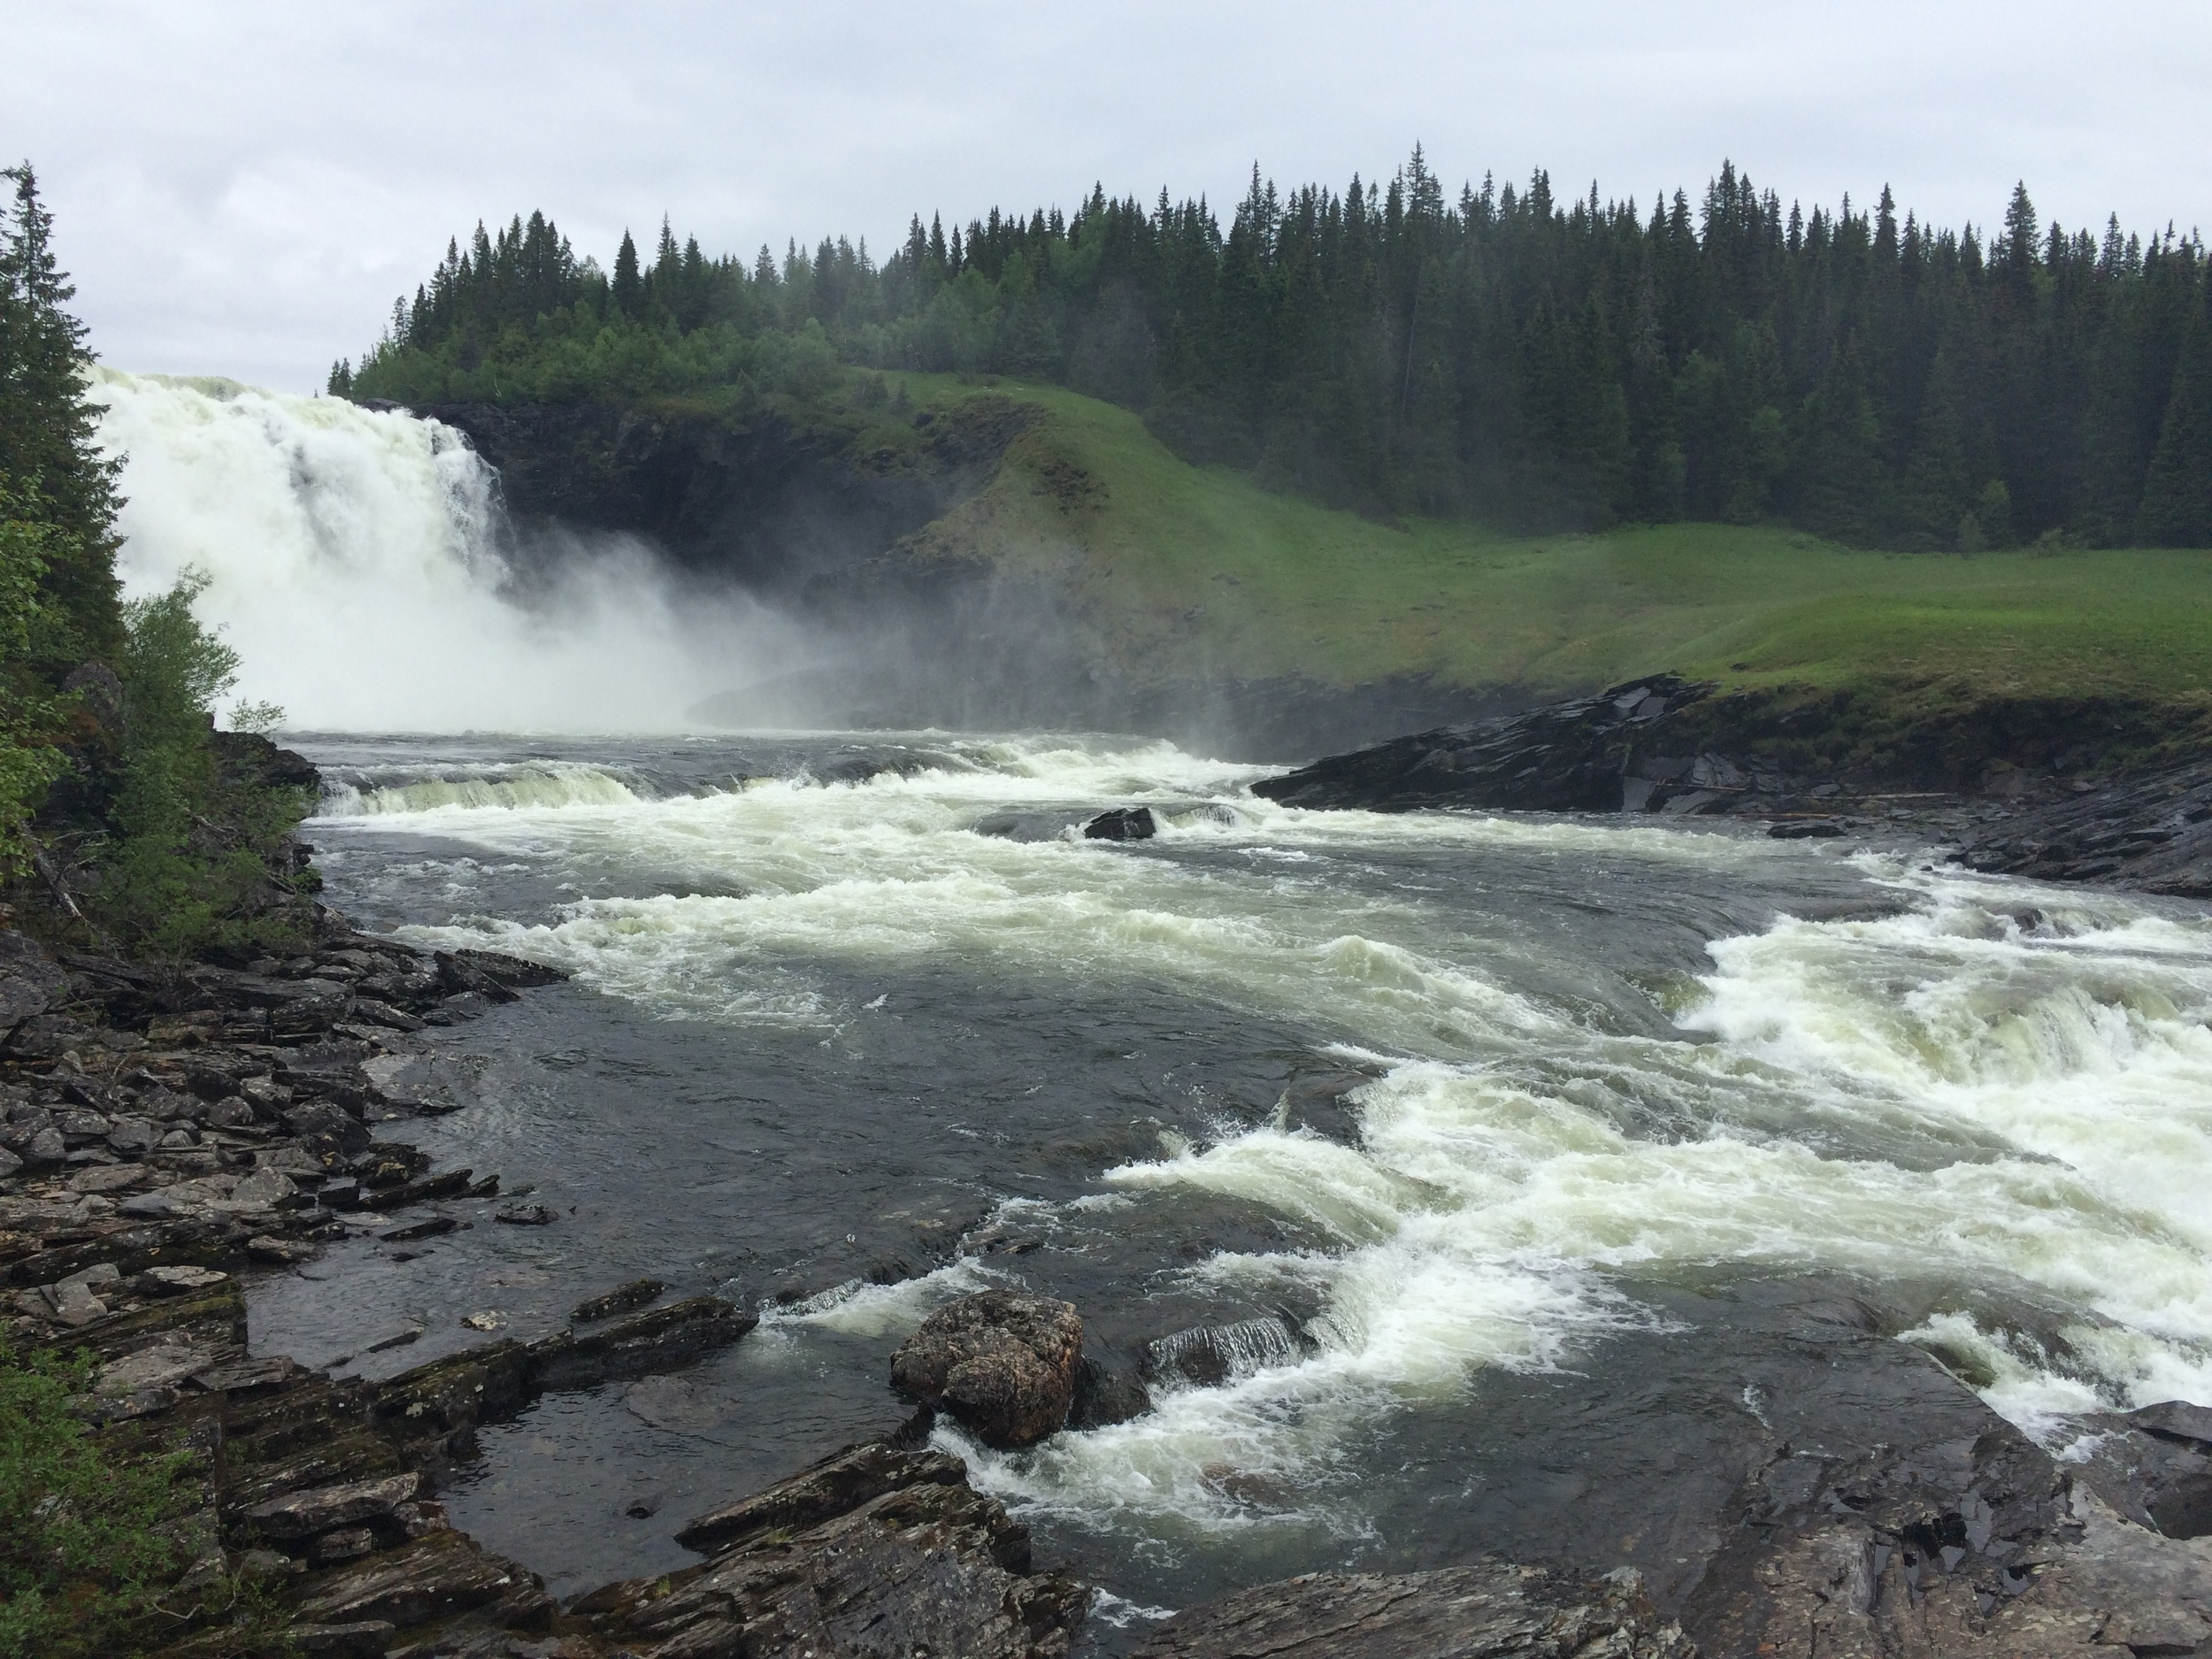 Seen here is the largest waterfall (by volume) in Sweden, Tännforsen. I can assure you that it's mad impressive in real life.